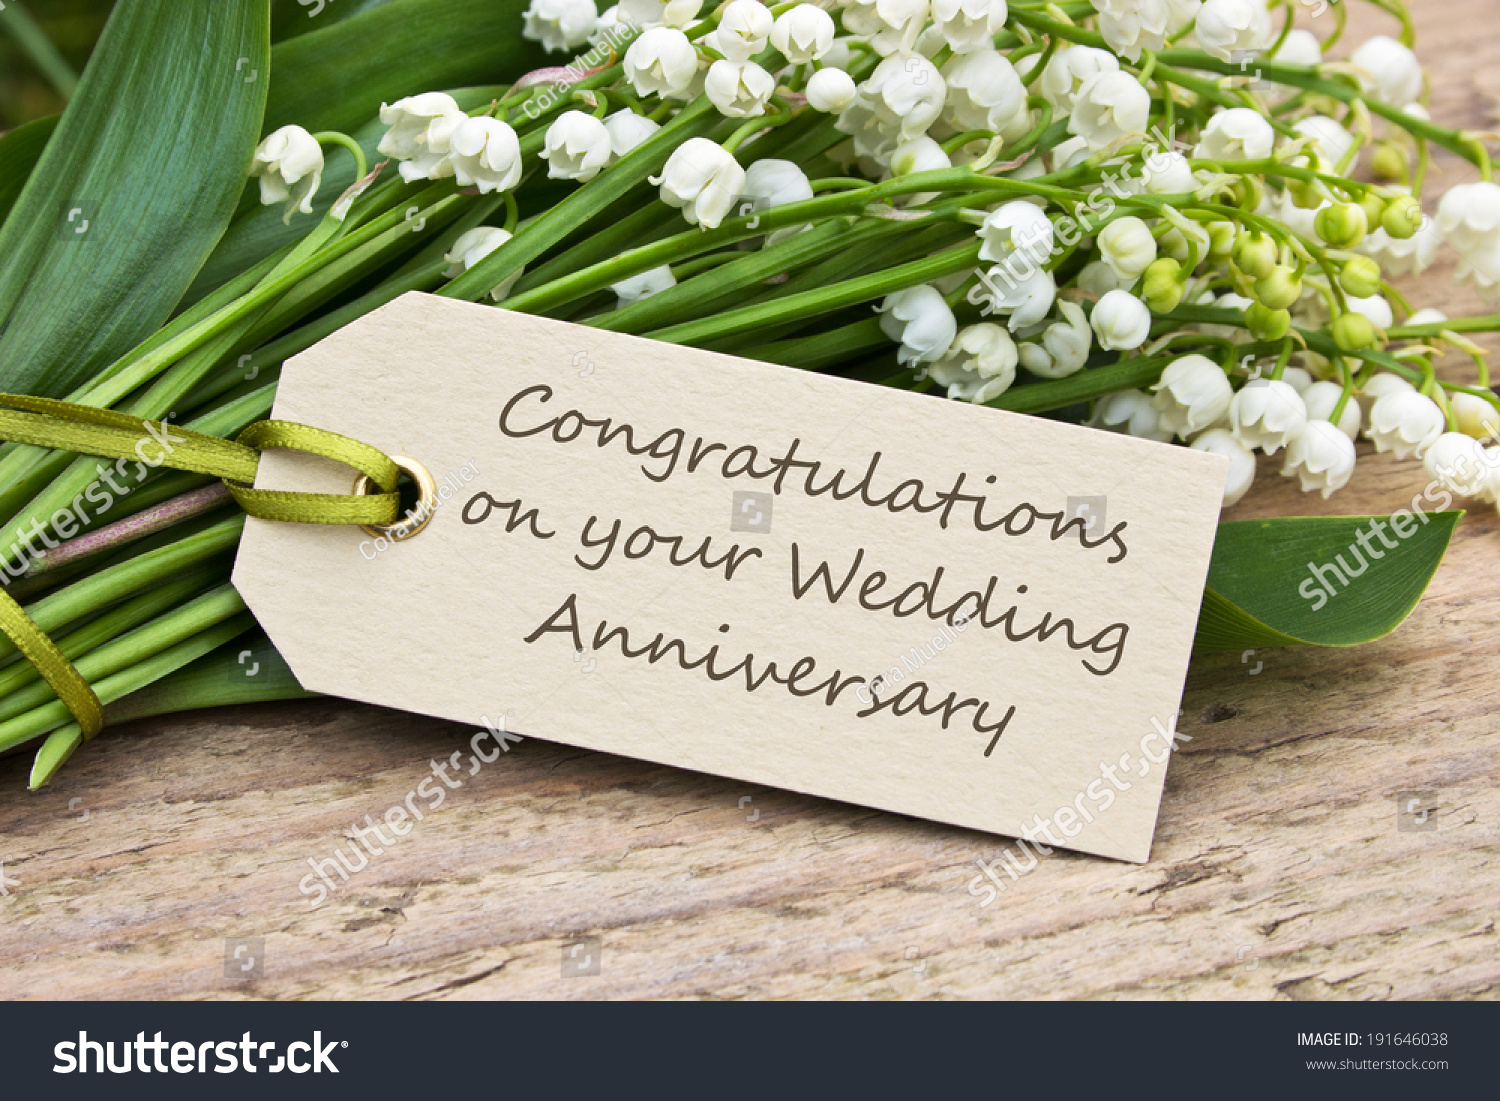 wedding anniversary card lily valleycongratulations on stock photo Congratulations Your Wedding Anniversary wedding anniversary card with lily of the valley congratulations on your wedding anniversary english congratulations on your wedding anniversary